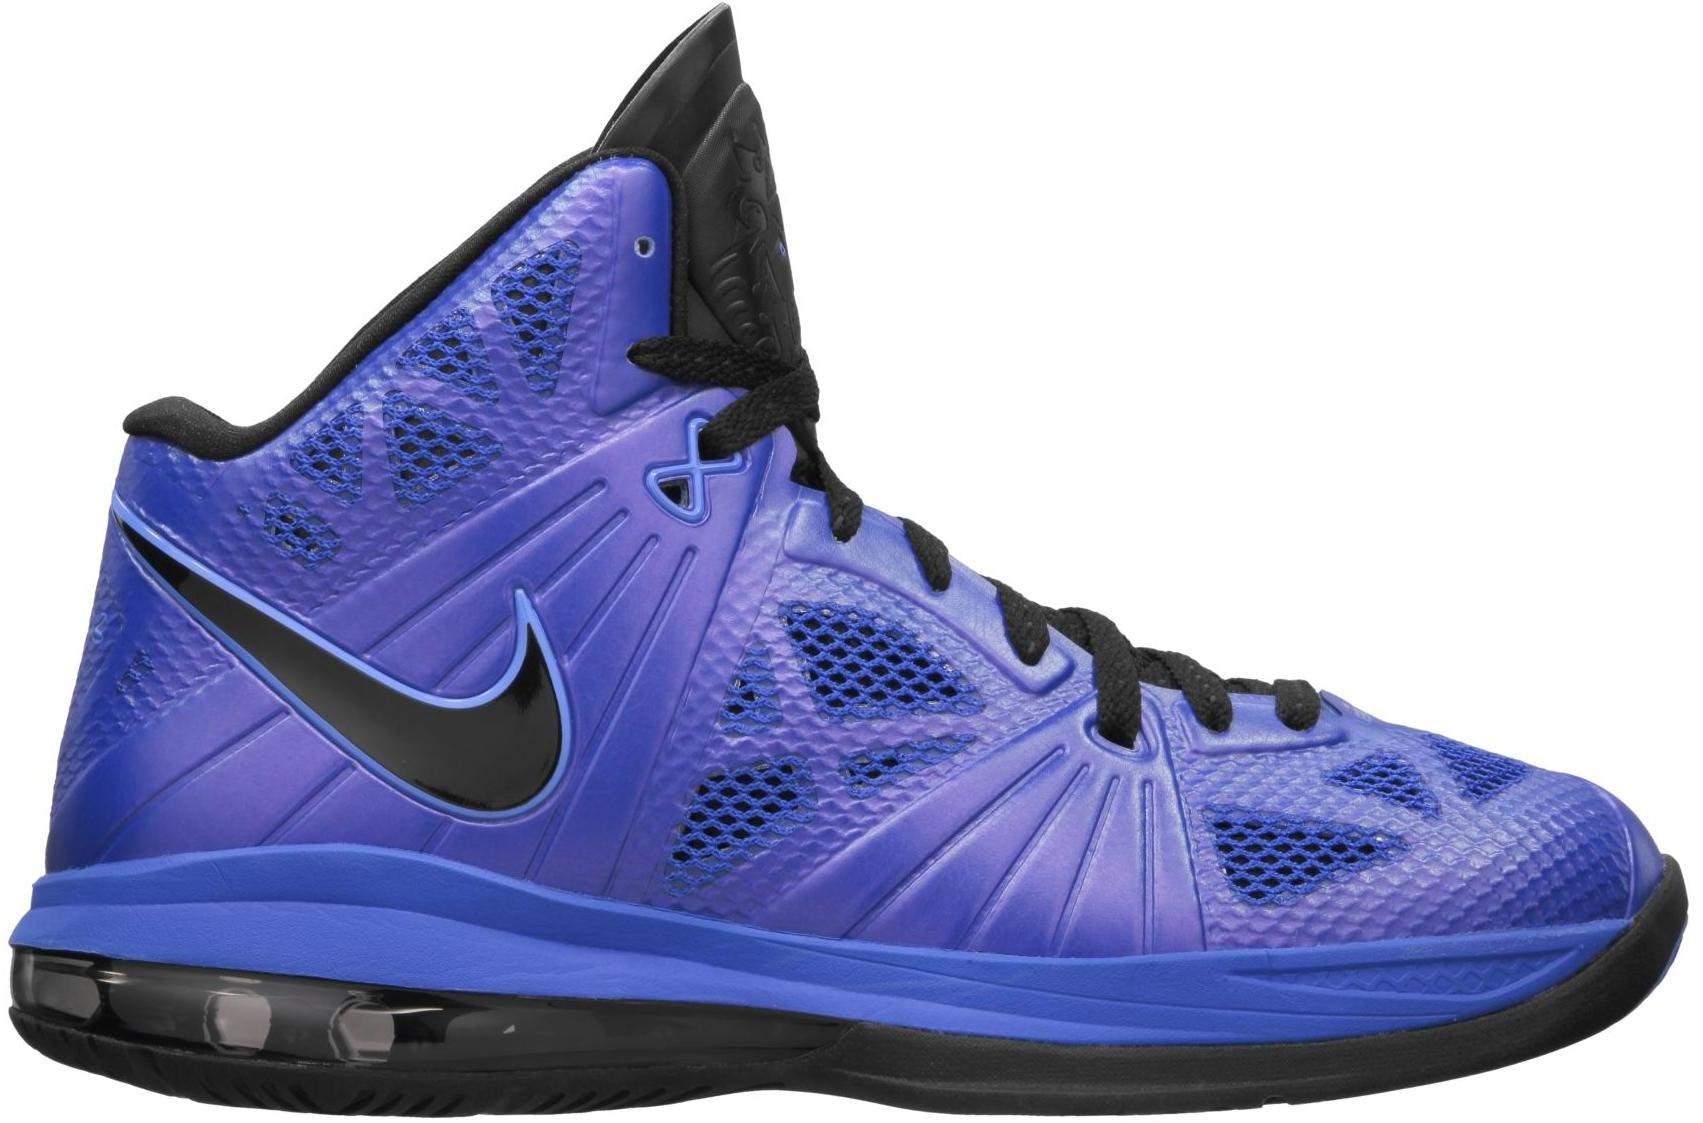 lebron 8. lebron 8 ps royal/black lebron